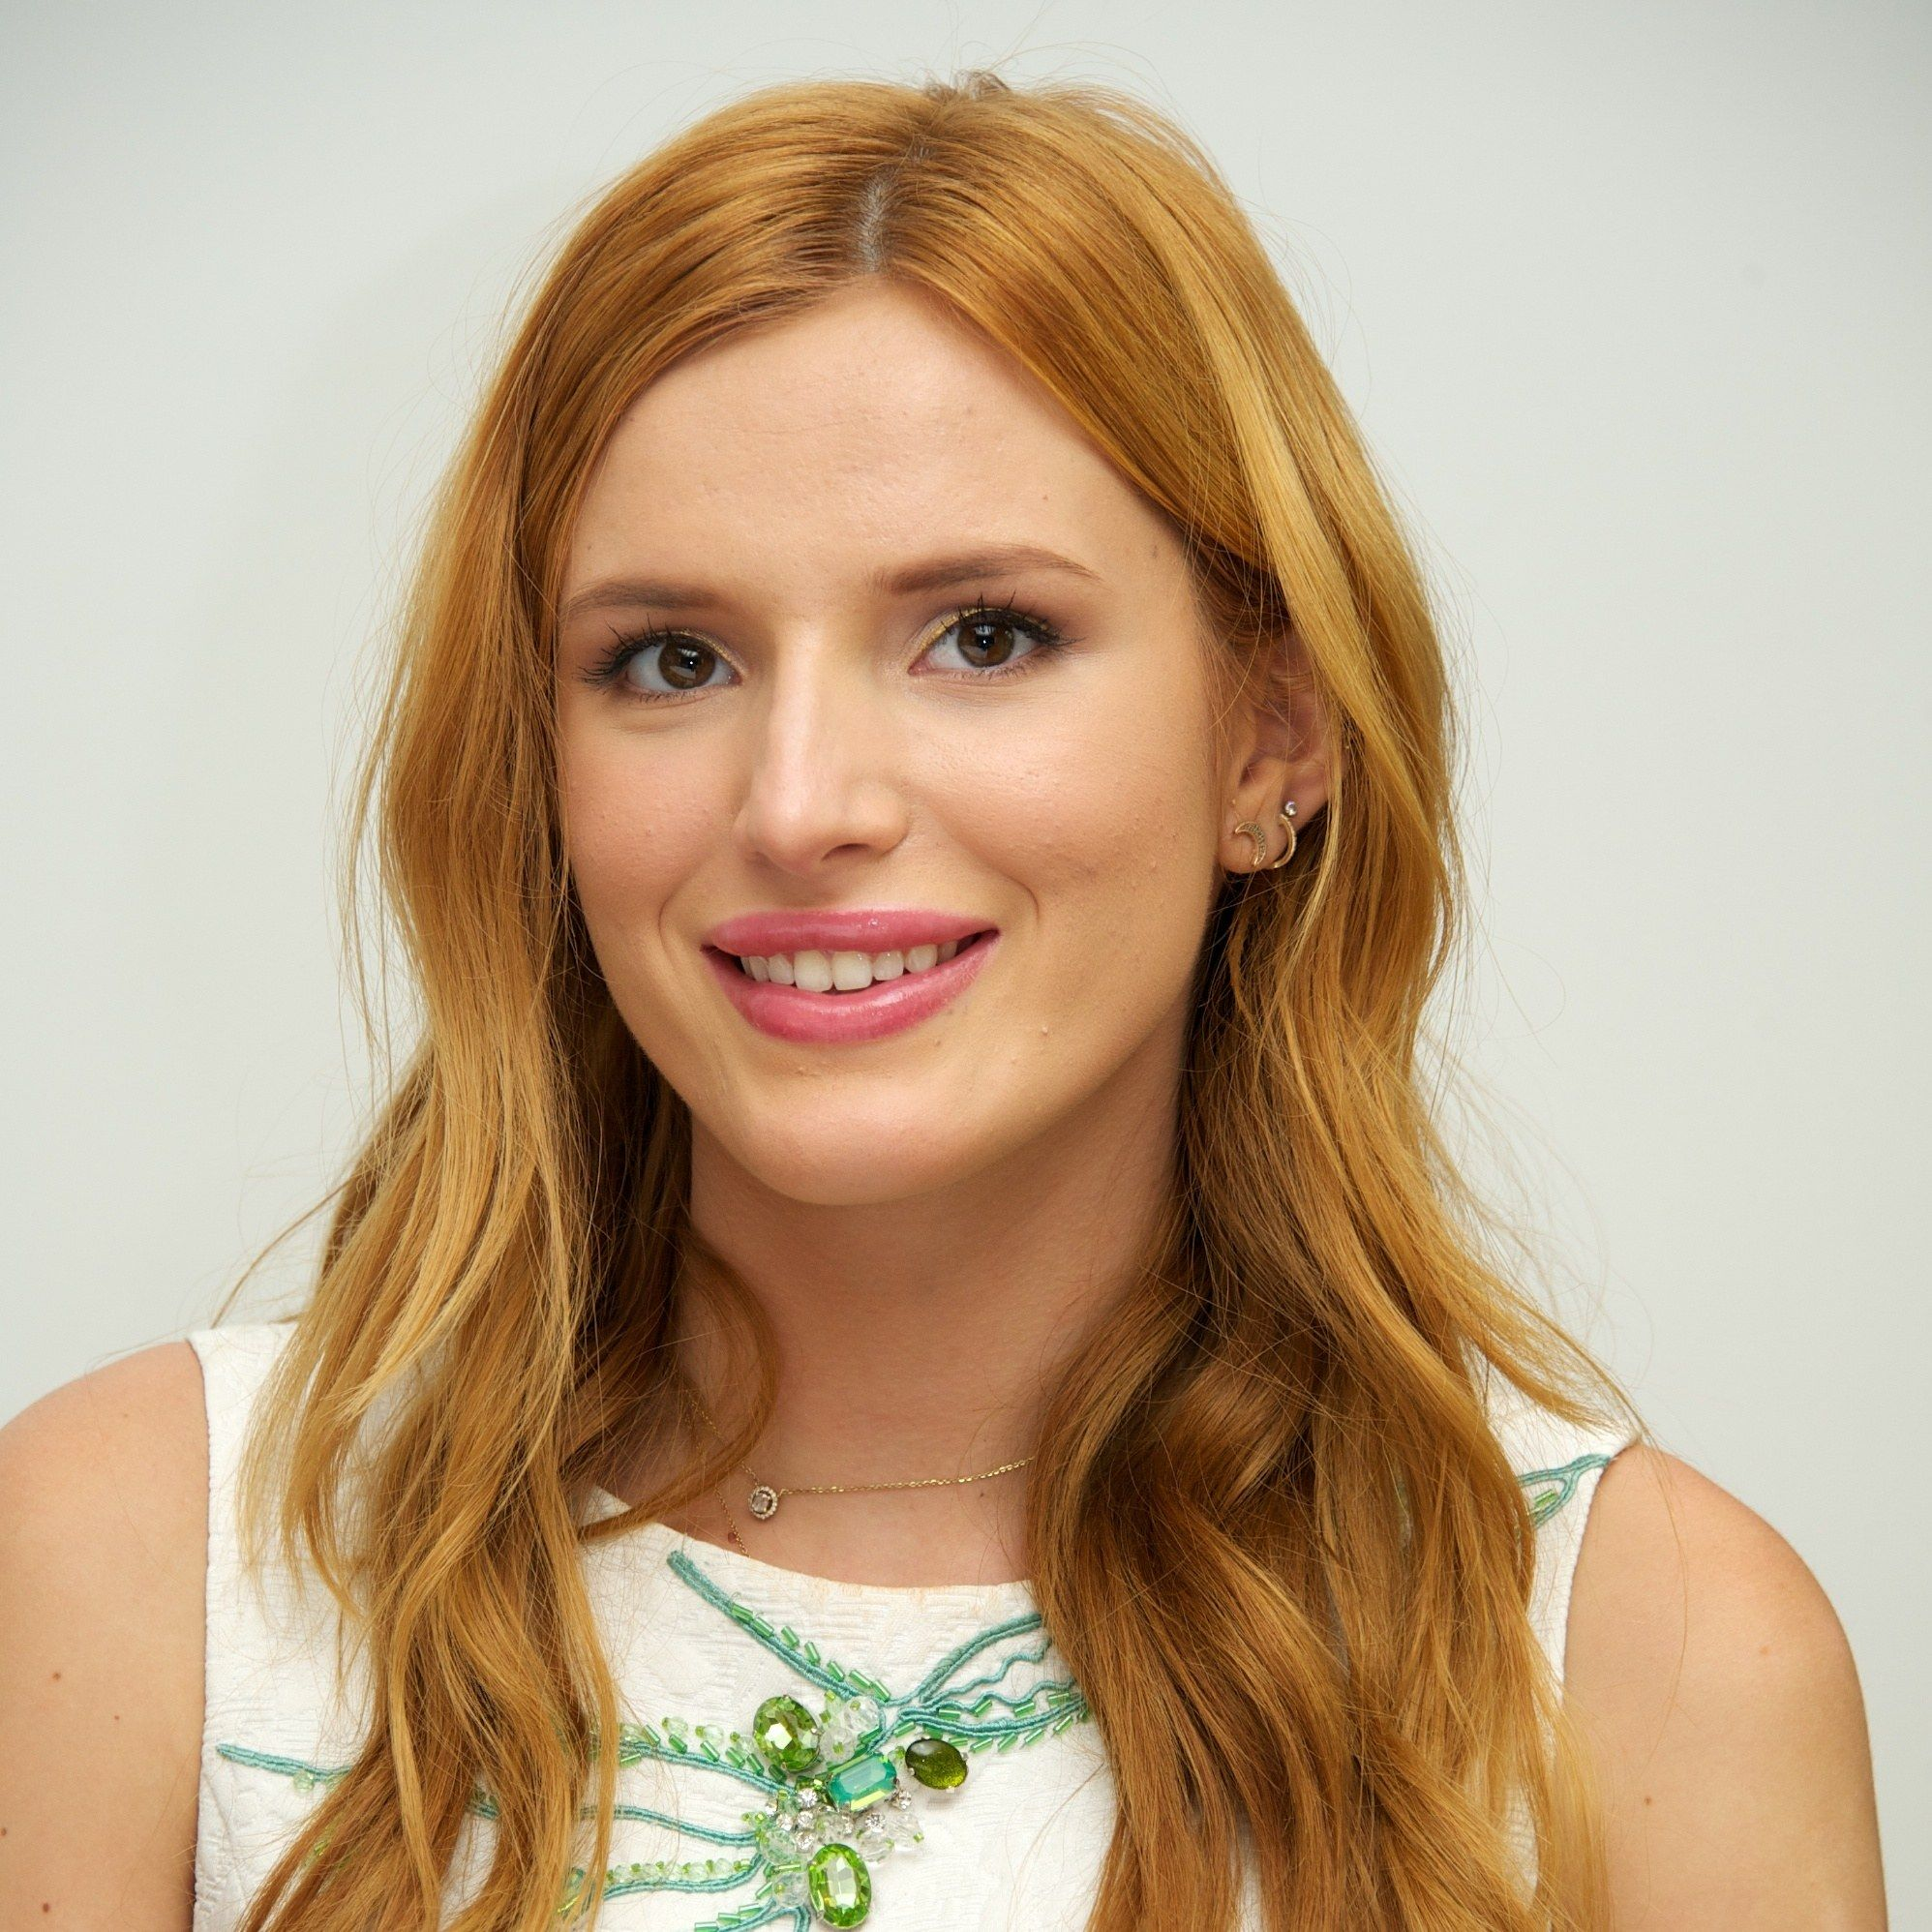 bffac49dbc Bella Thorne Just Wore Her Swimsuit AND Her Bra As a Top